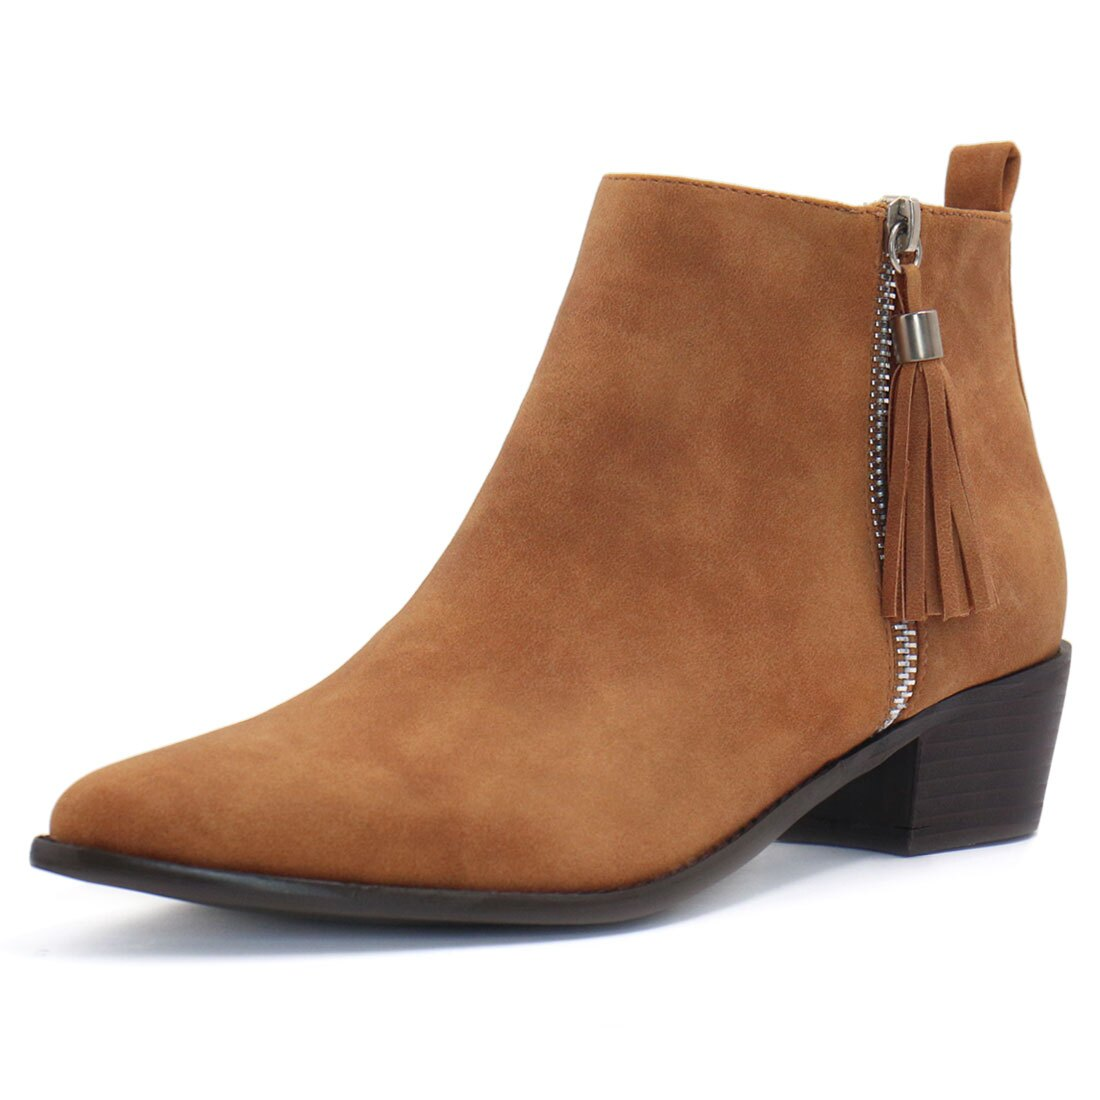 Women's Pointed Toe Tassel Zippered Stacked Heel Ankle Booties